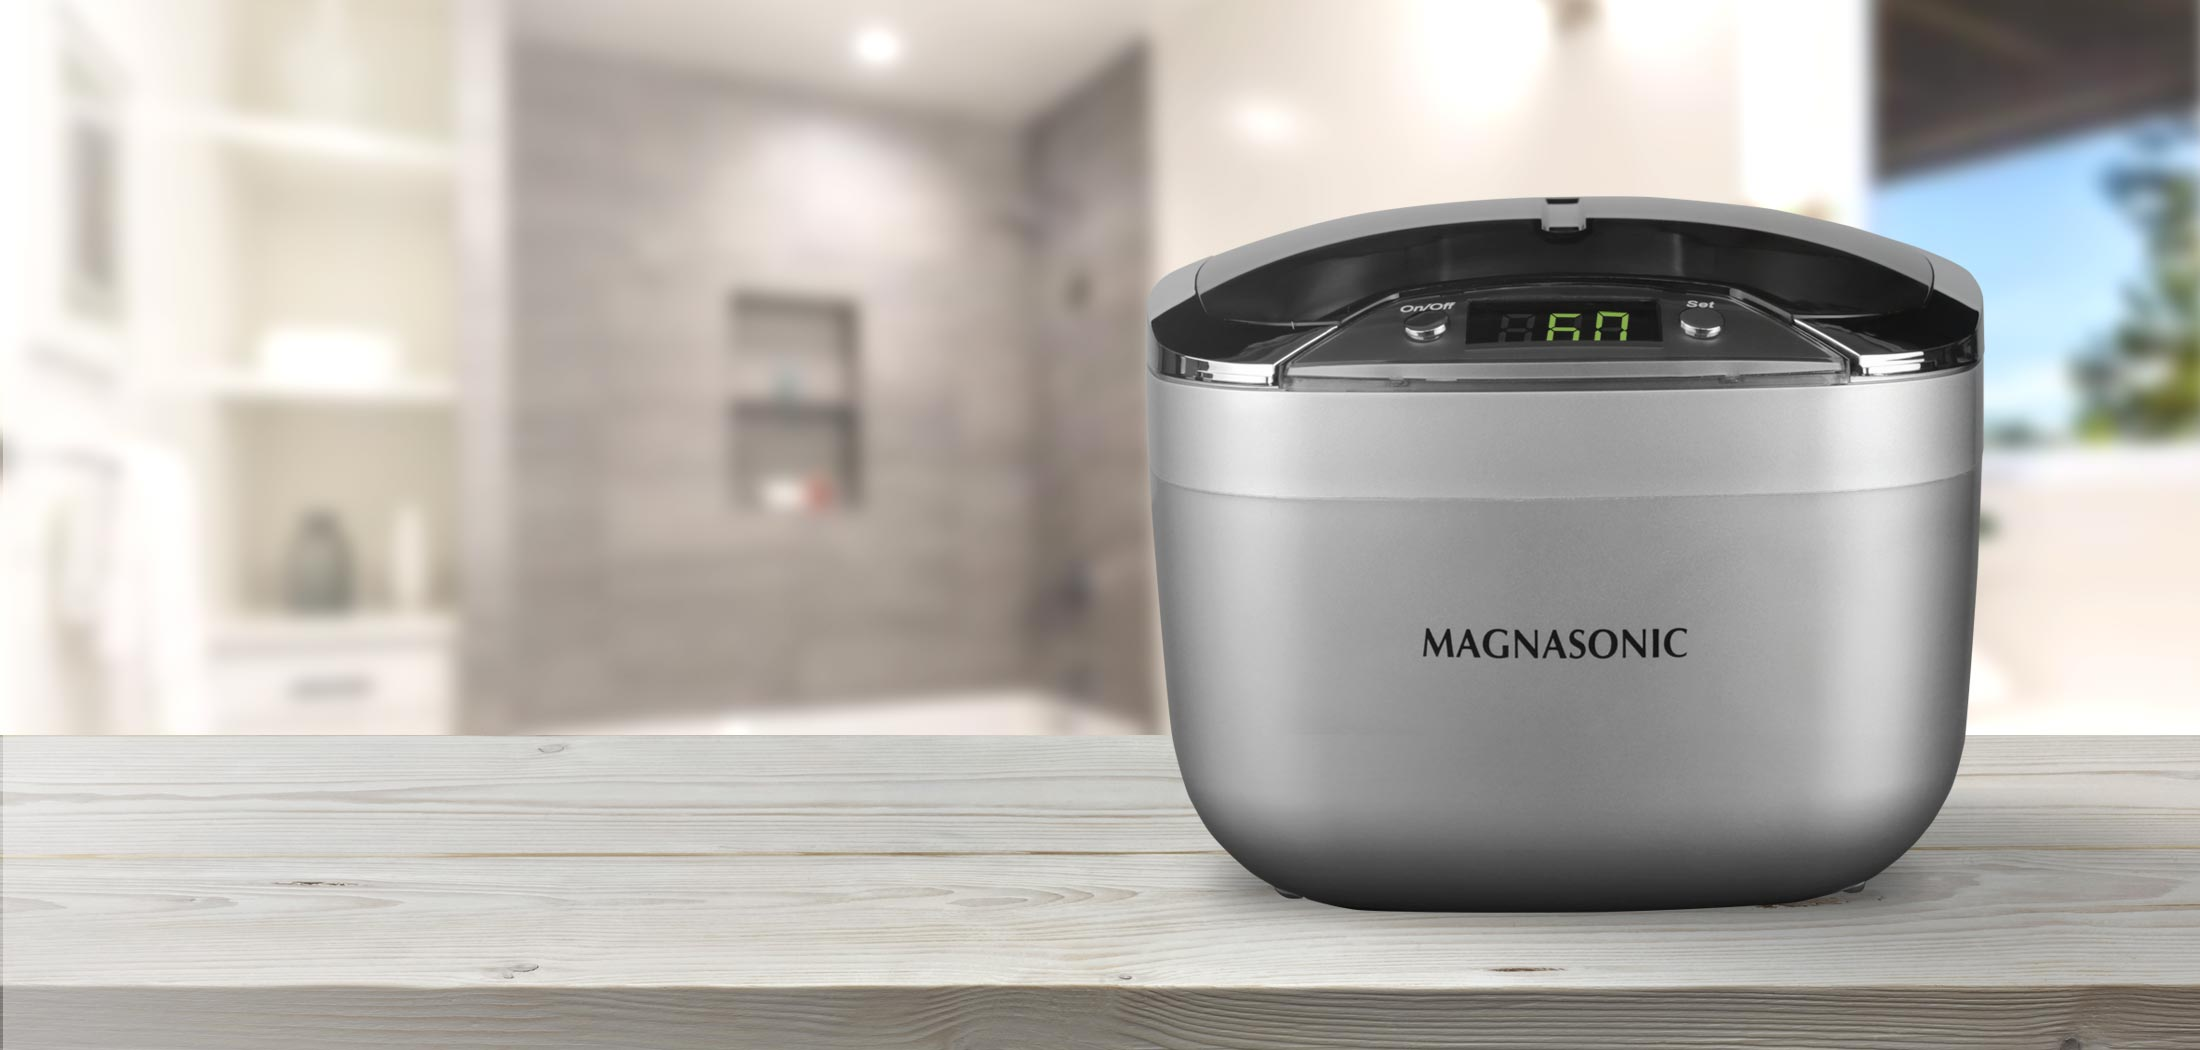 Image result for 2. MAGNASONIC Professional Ultrasonic Jewelry and Eyeglass Cleaner With Digital Timer MGUC500: